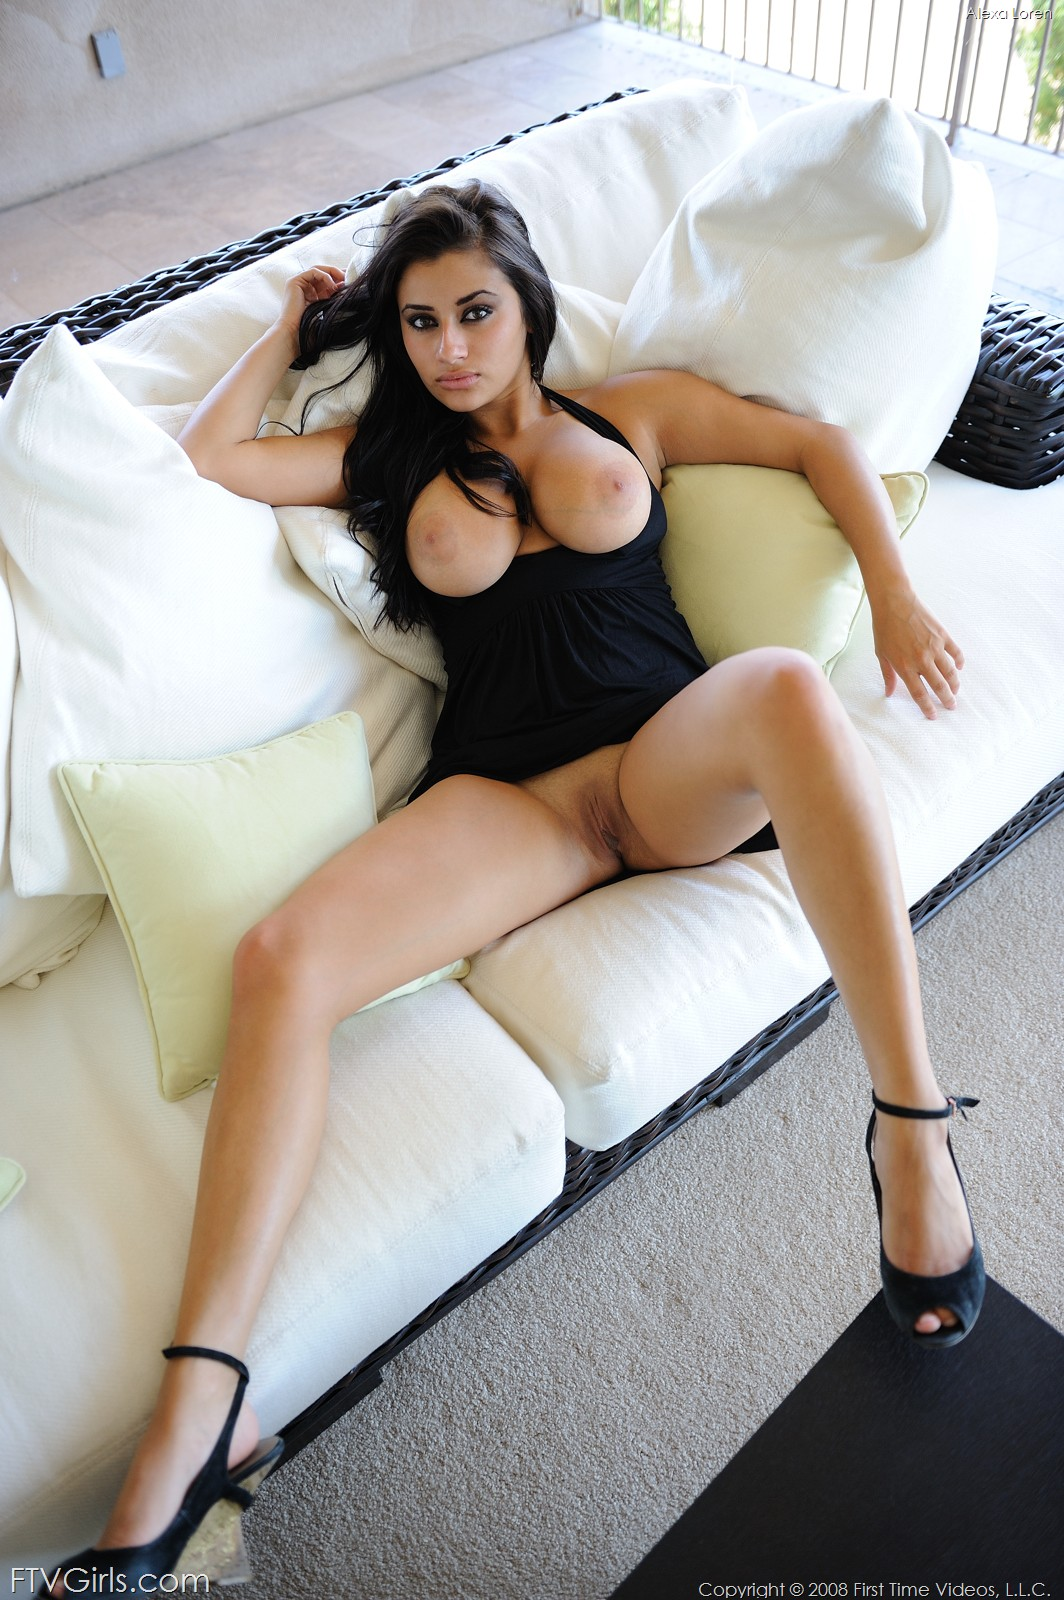 Mexican bloody virgin pussy